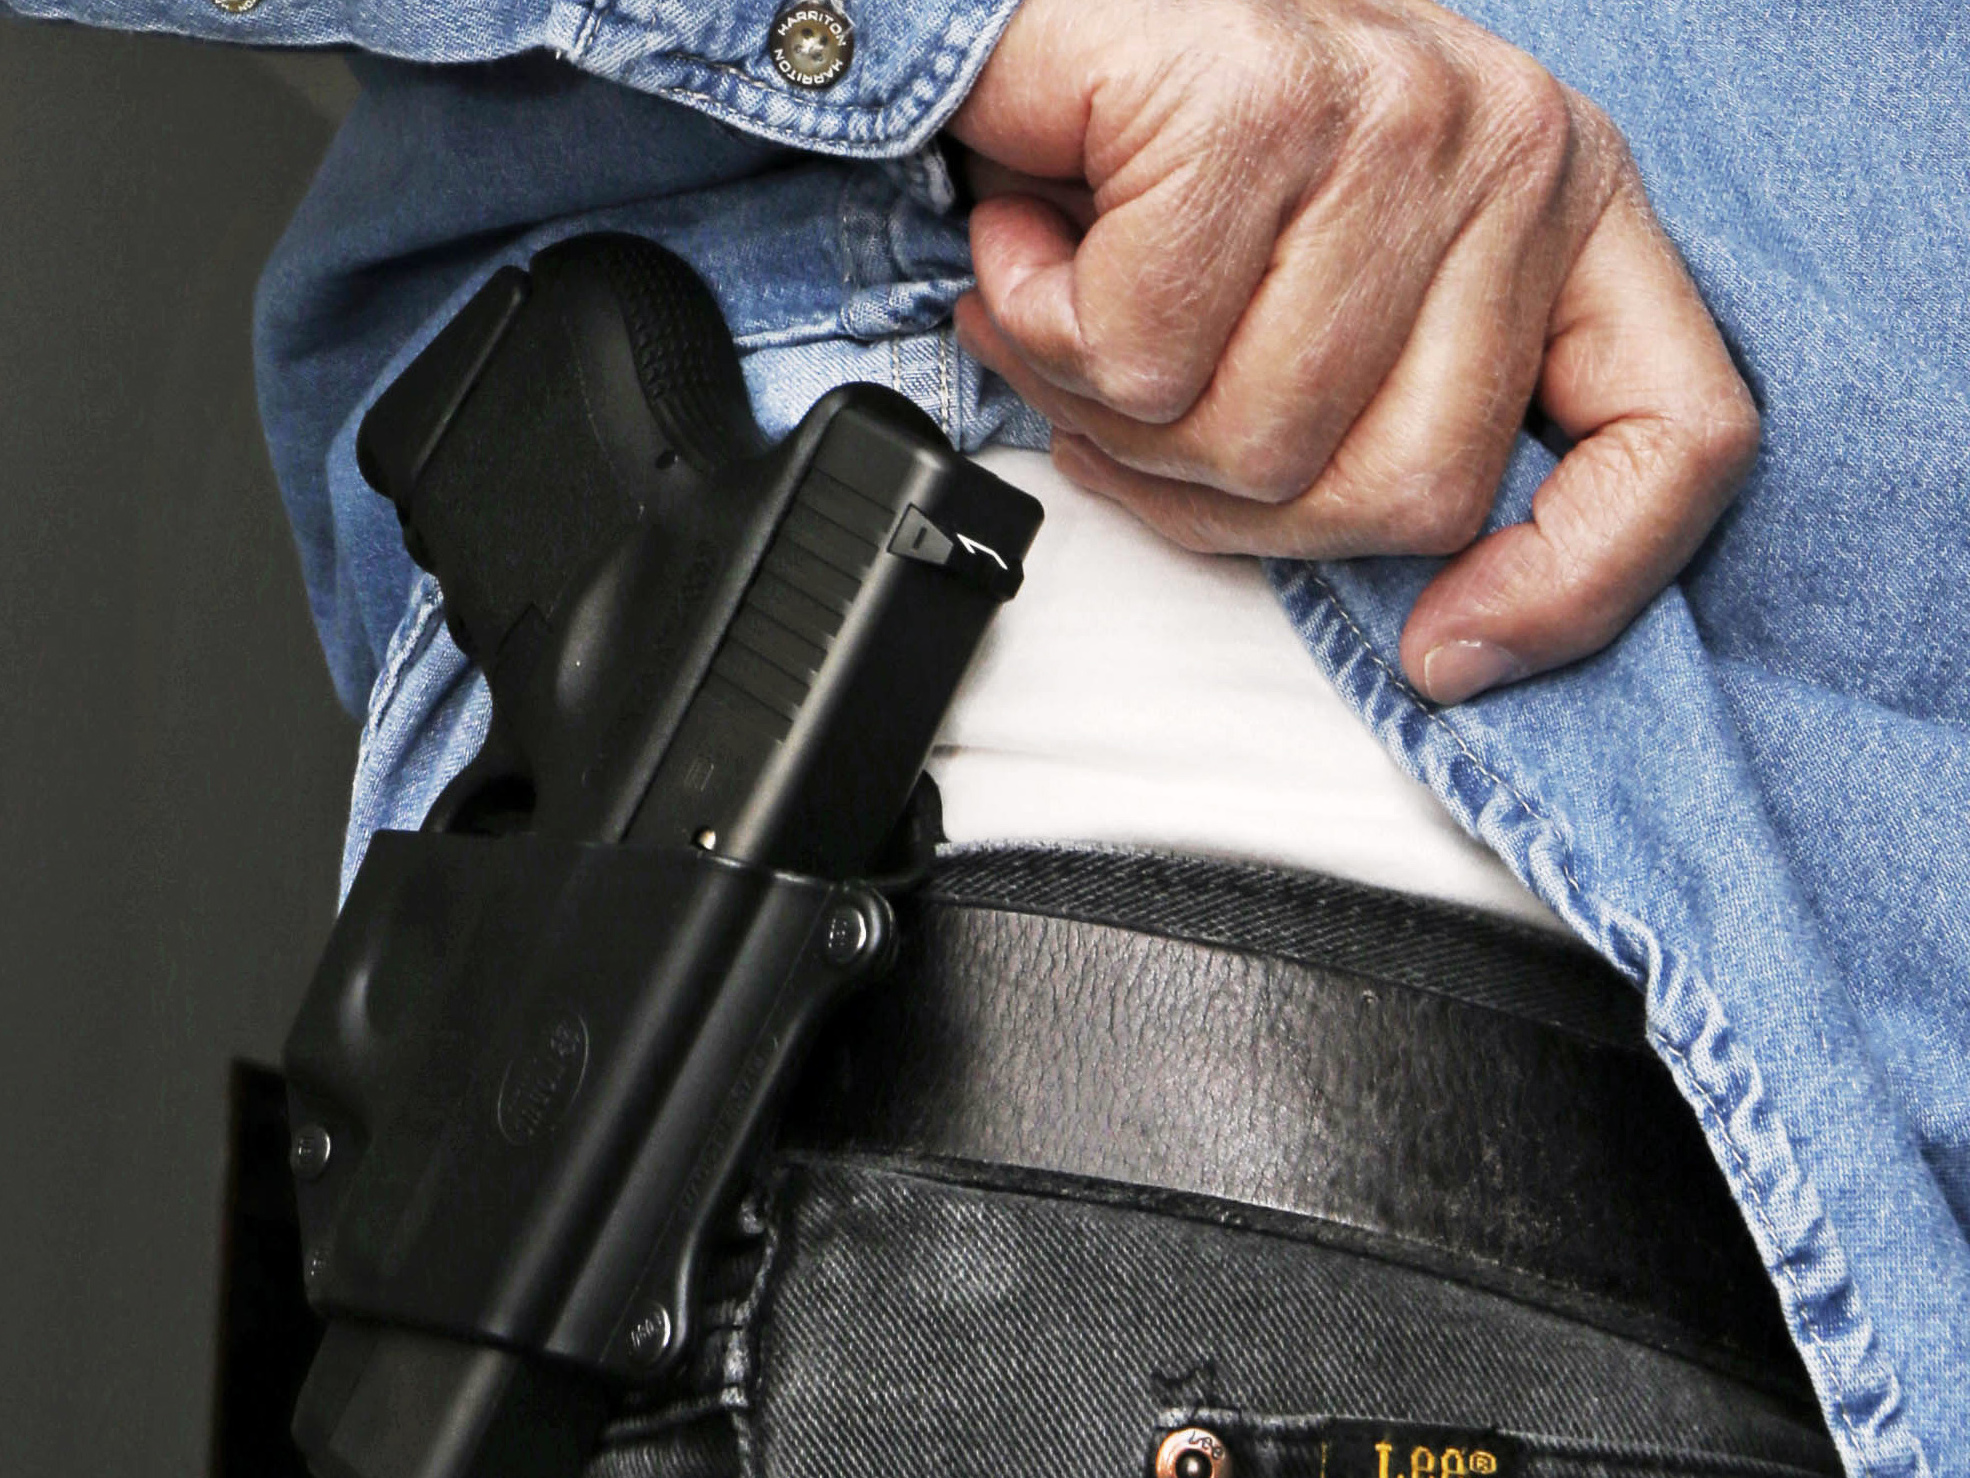 Dealing a blow to gun supporters, a federal appeals court ruled Thursday that Americans do not have a constitutional right to carry concealed weapons in public. Al Behrman/AP